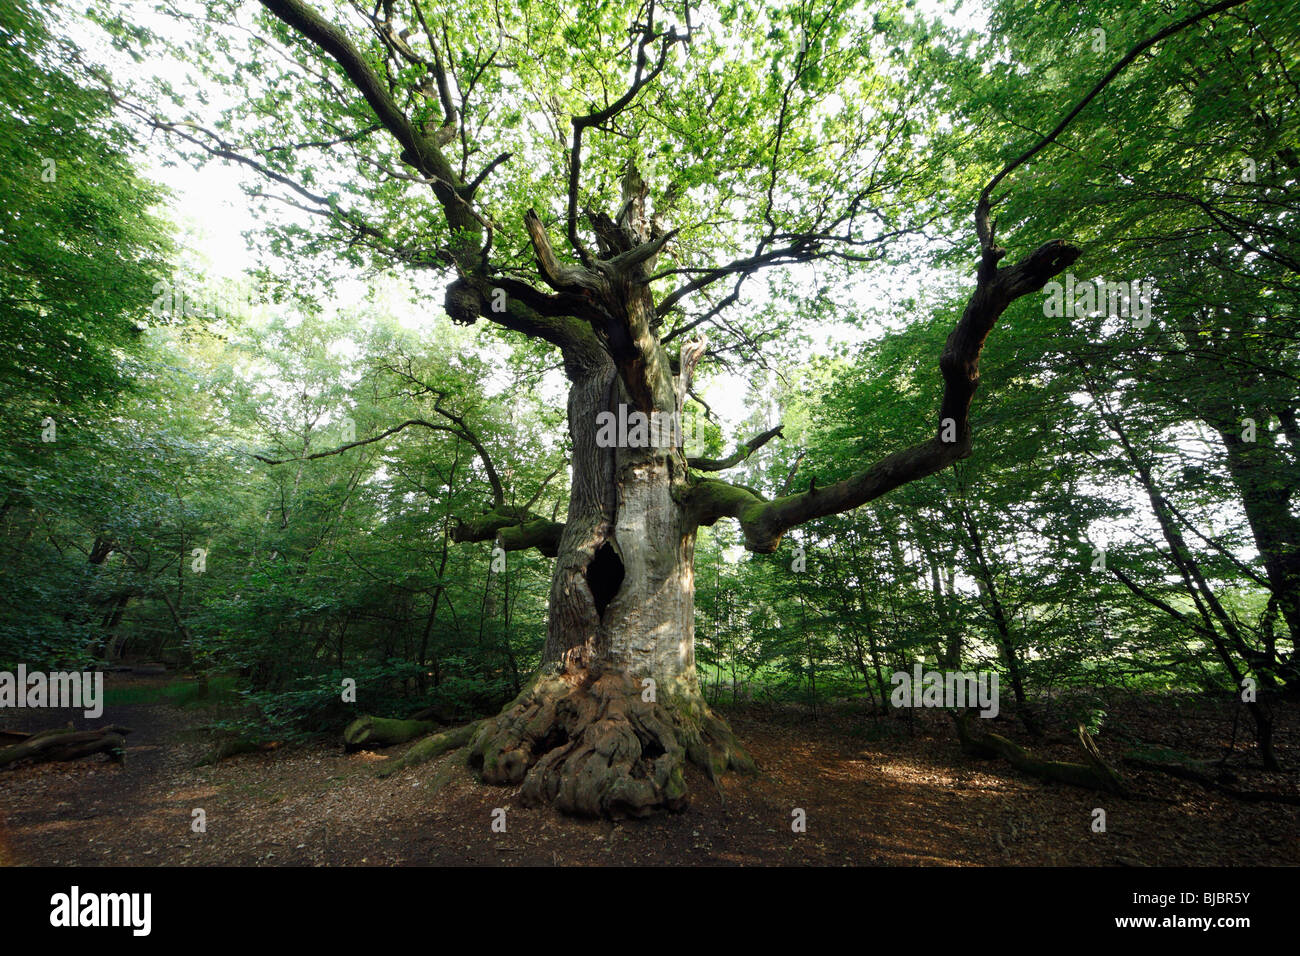 Oak Tree (Quercus robur), ancient tree in summer, Sababurg Ancient Forest NP, N. Hessen, Germany - Stock Image